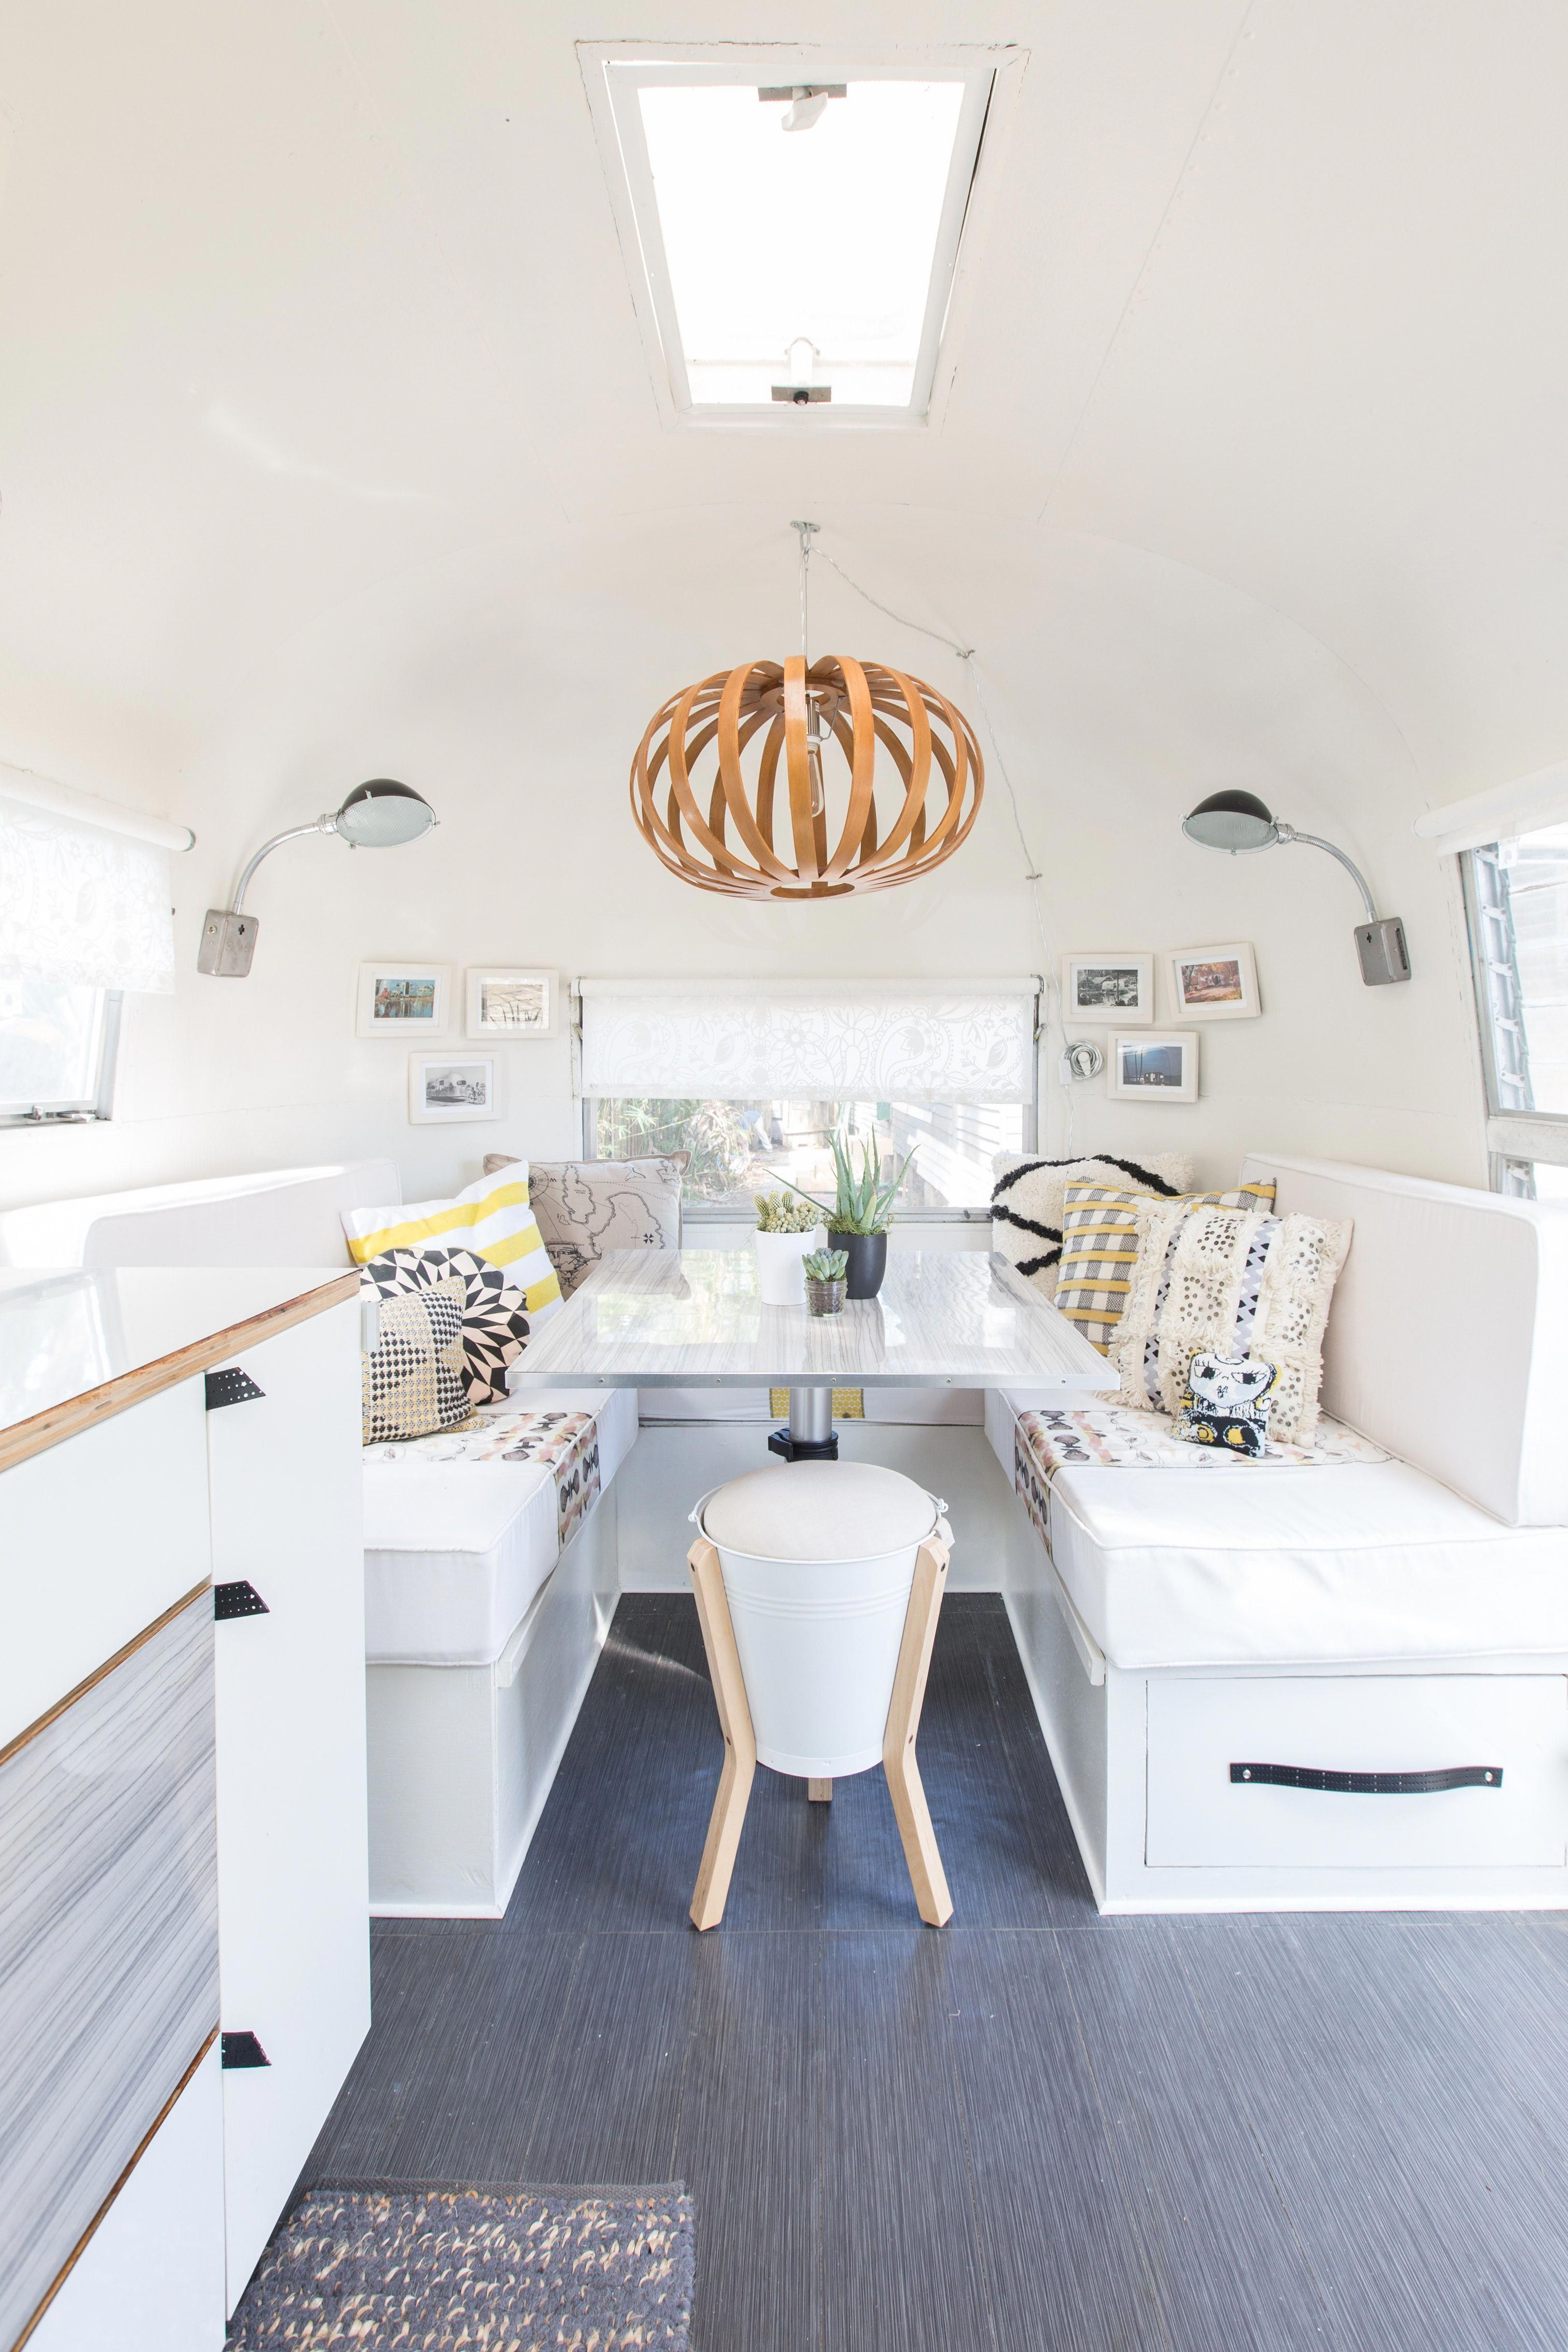 House Tour: A Vintage Airstream Finds Home in New Orleans ...